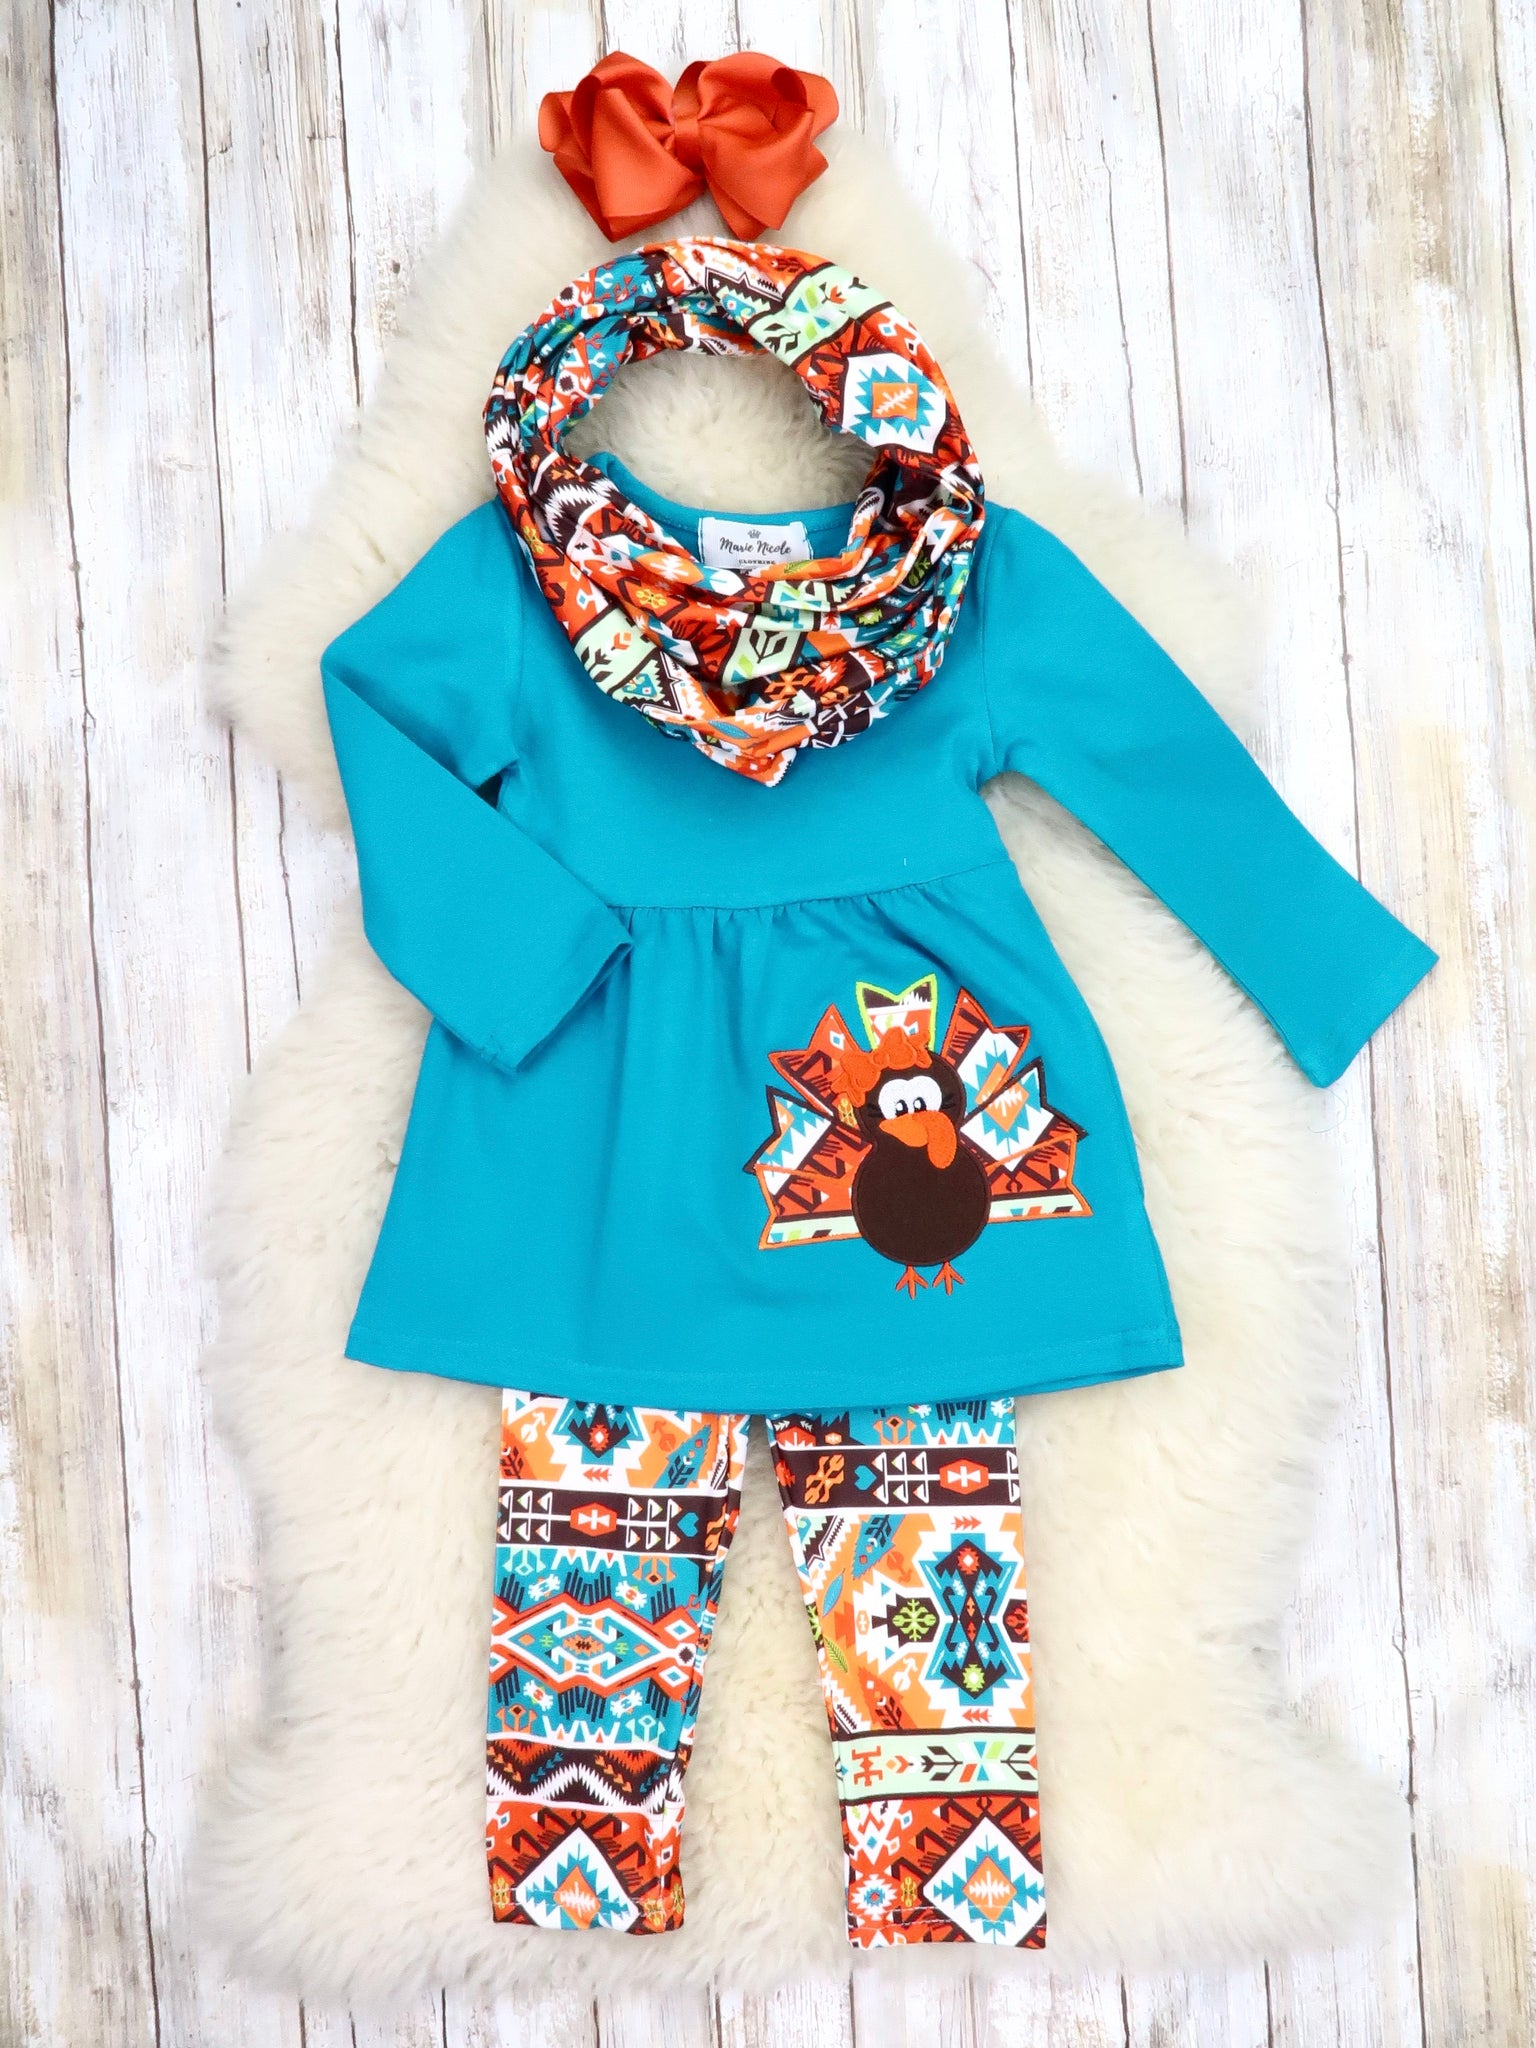 Blue Turkey Tunic, Aztec Pants, & Scarf Outfit